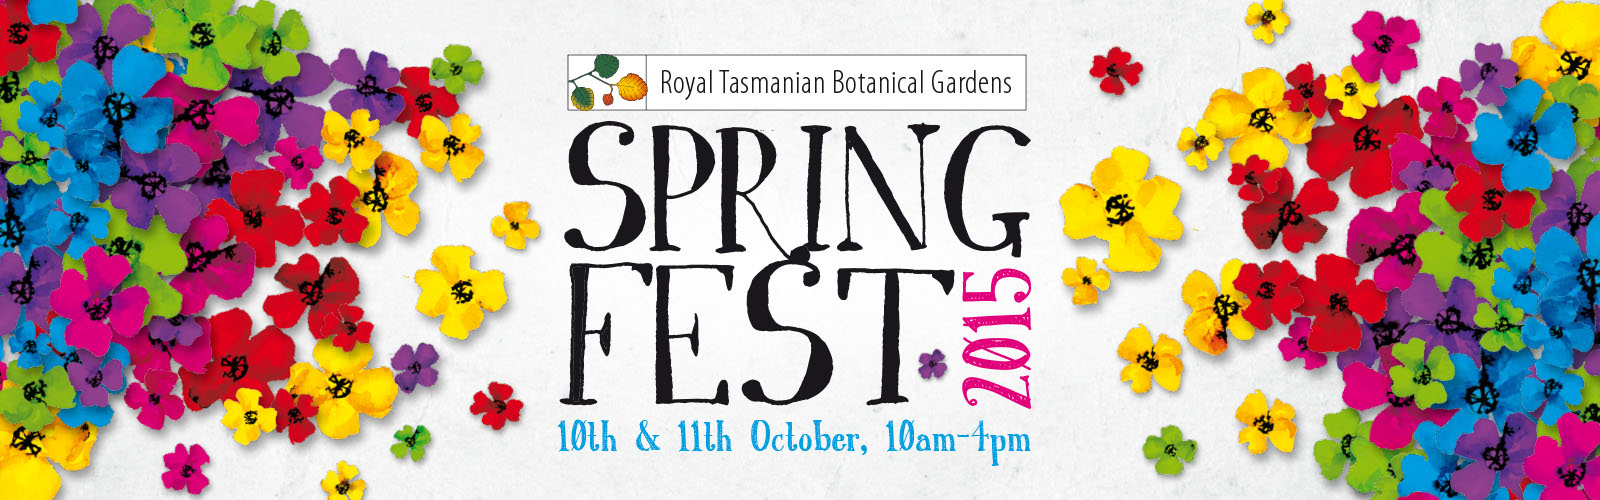 RTBG Spring Festival 2015 Web Banner October 10 and 11, 2015